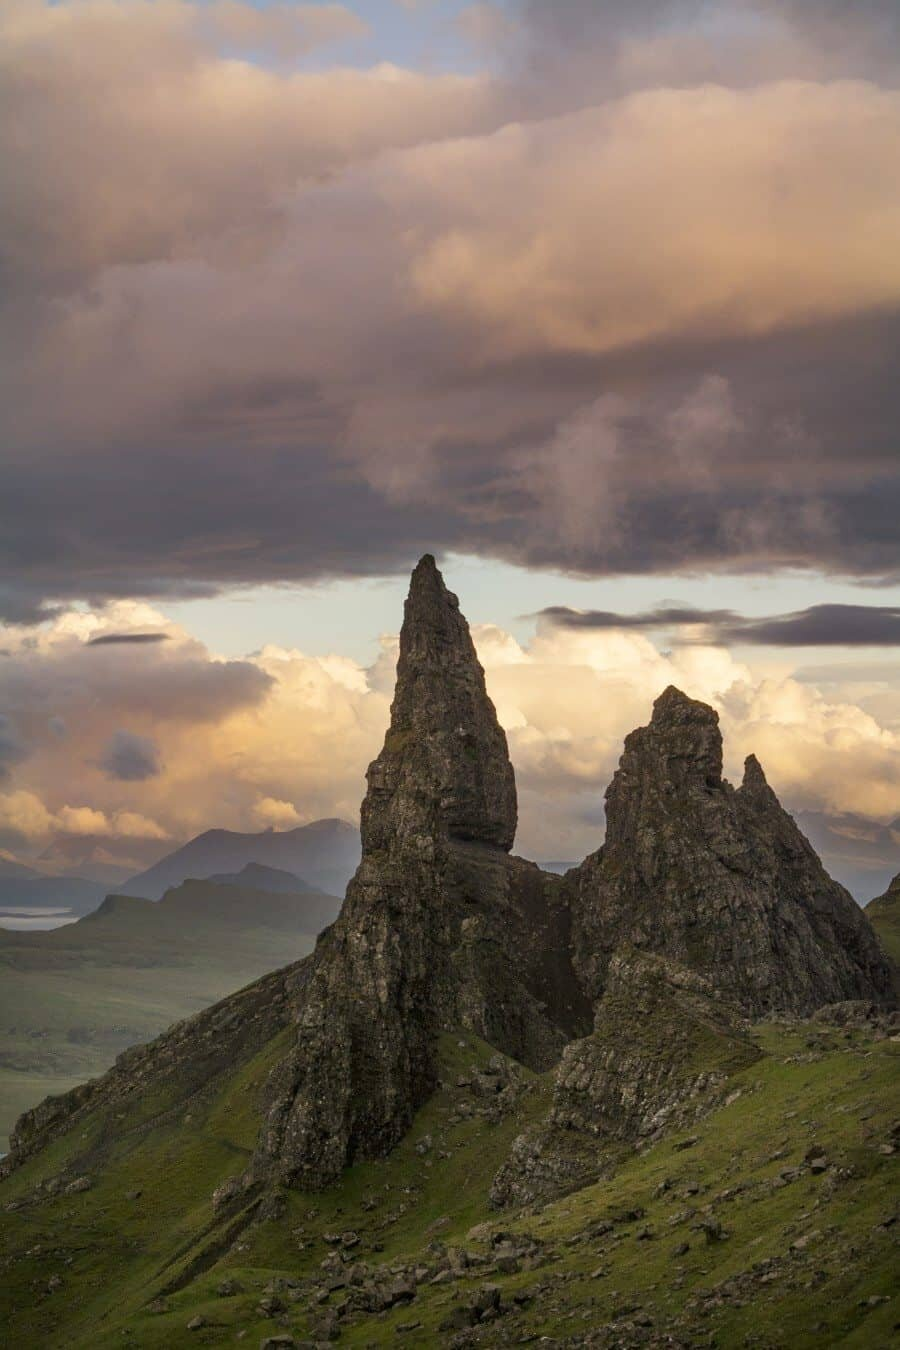 Old Man of Storr, Isle of Skye, Scotland guide by The Wandering Lens